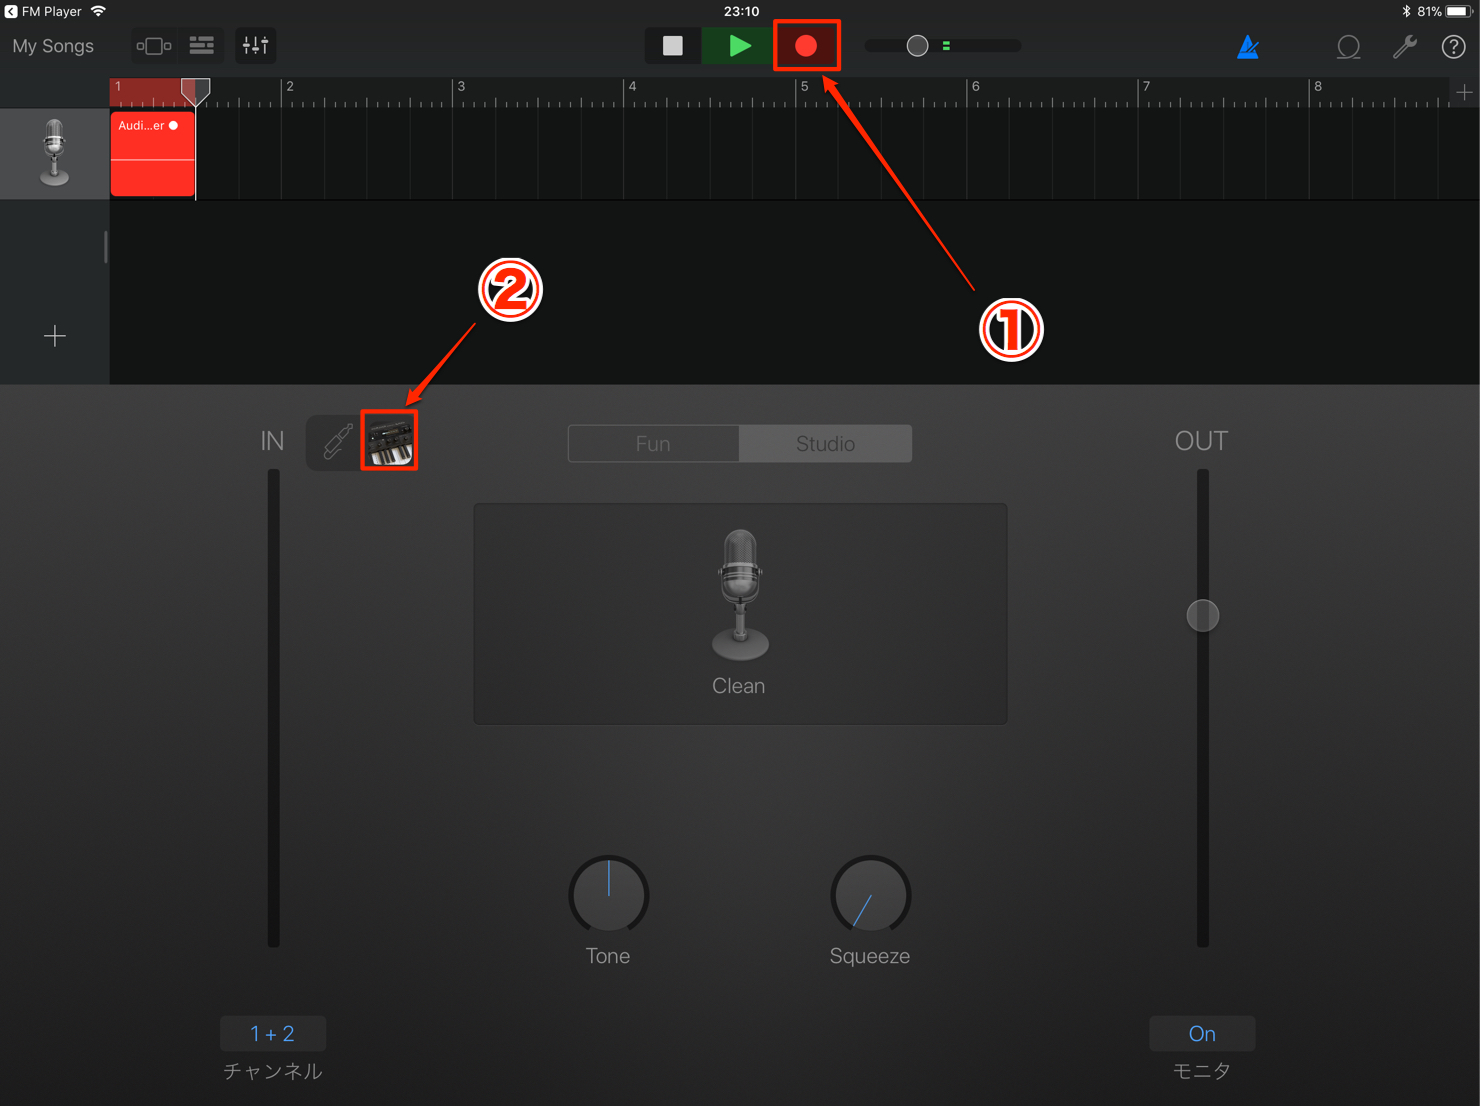 GarageBand-iOS-inter-app-audio-FM-player-3